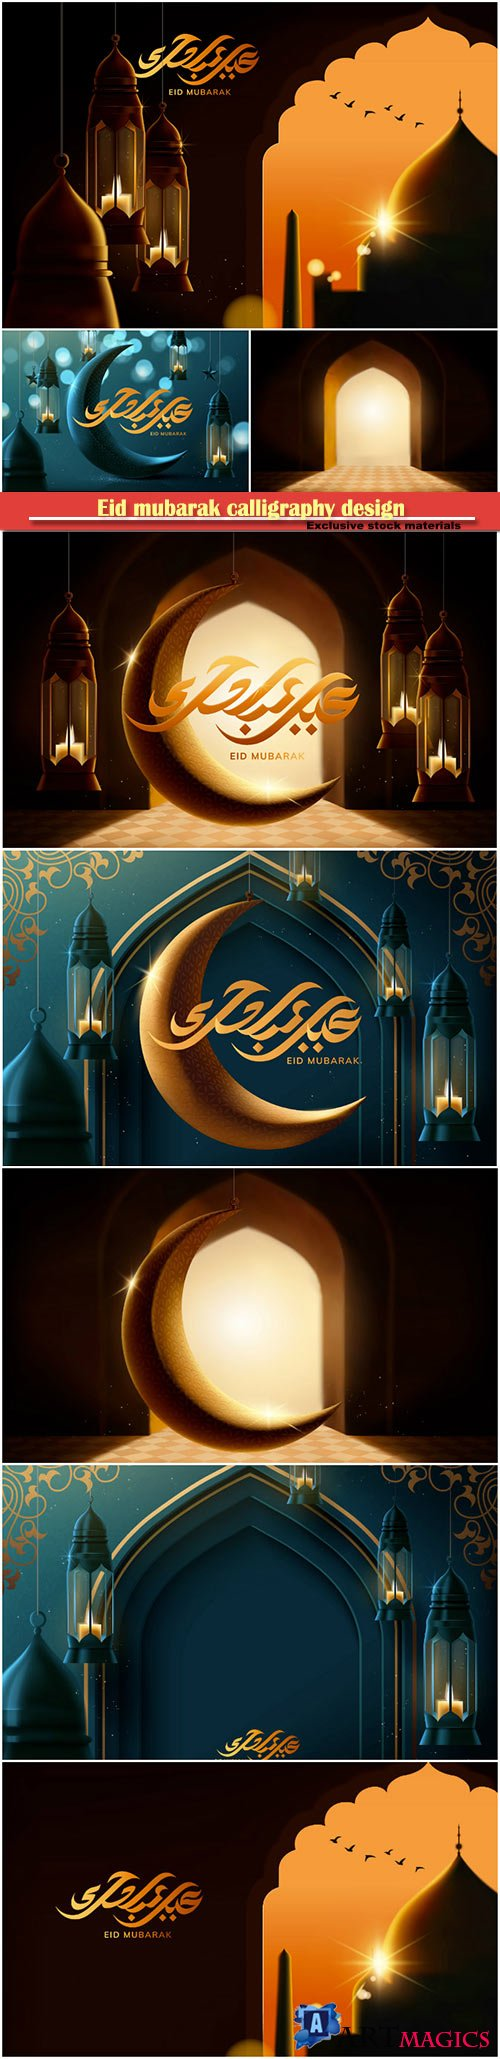 Eid mubarak calligraphy design, happy holiday written in Arabic